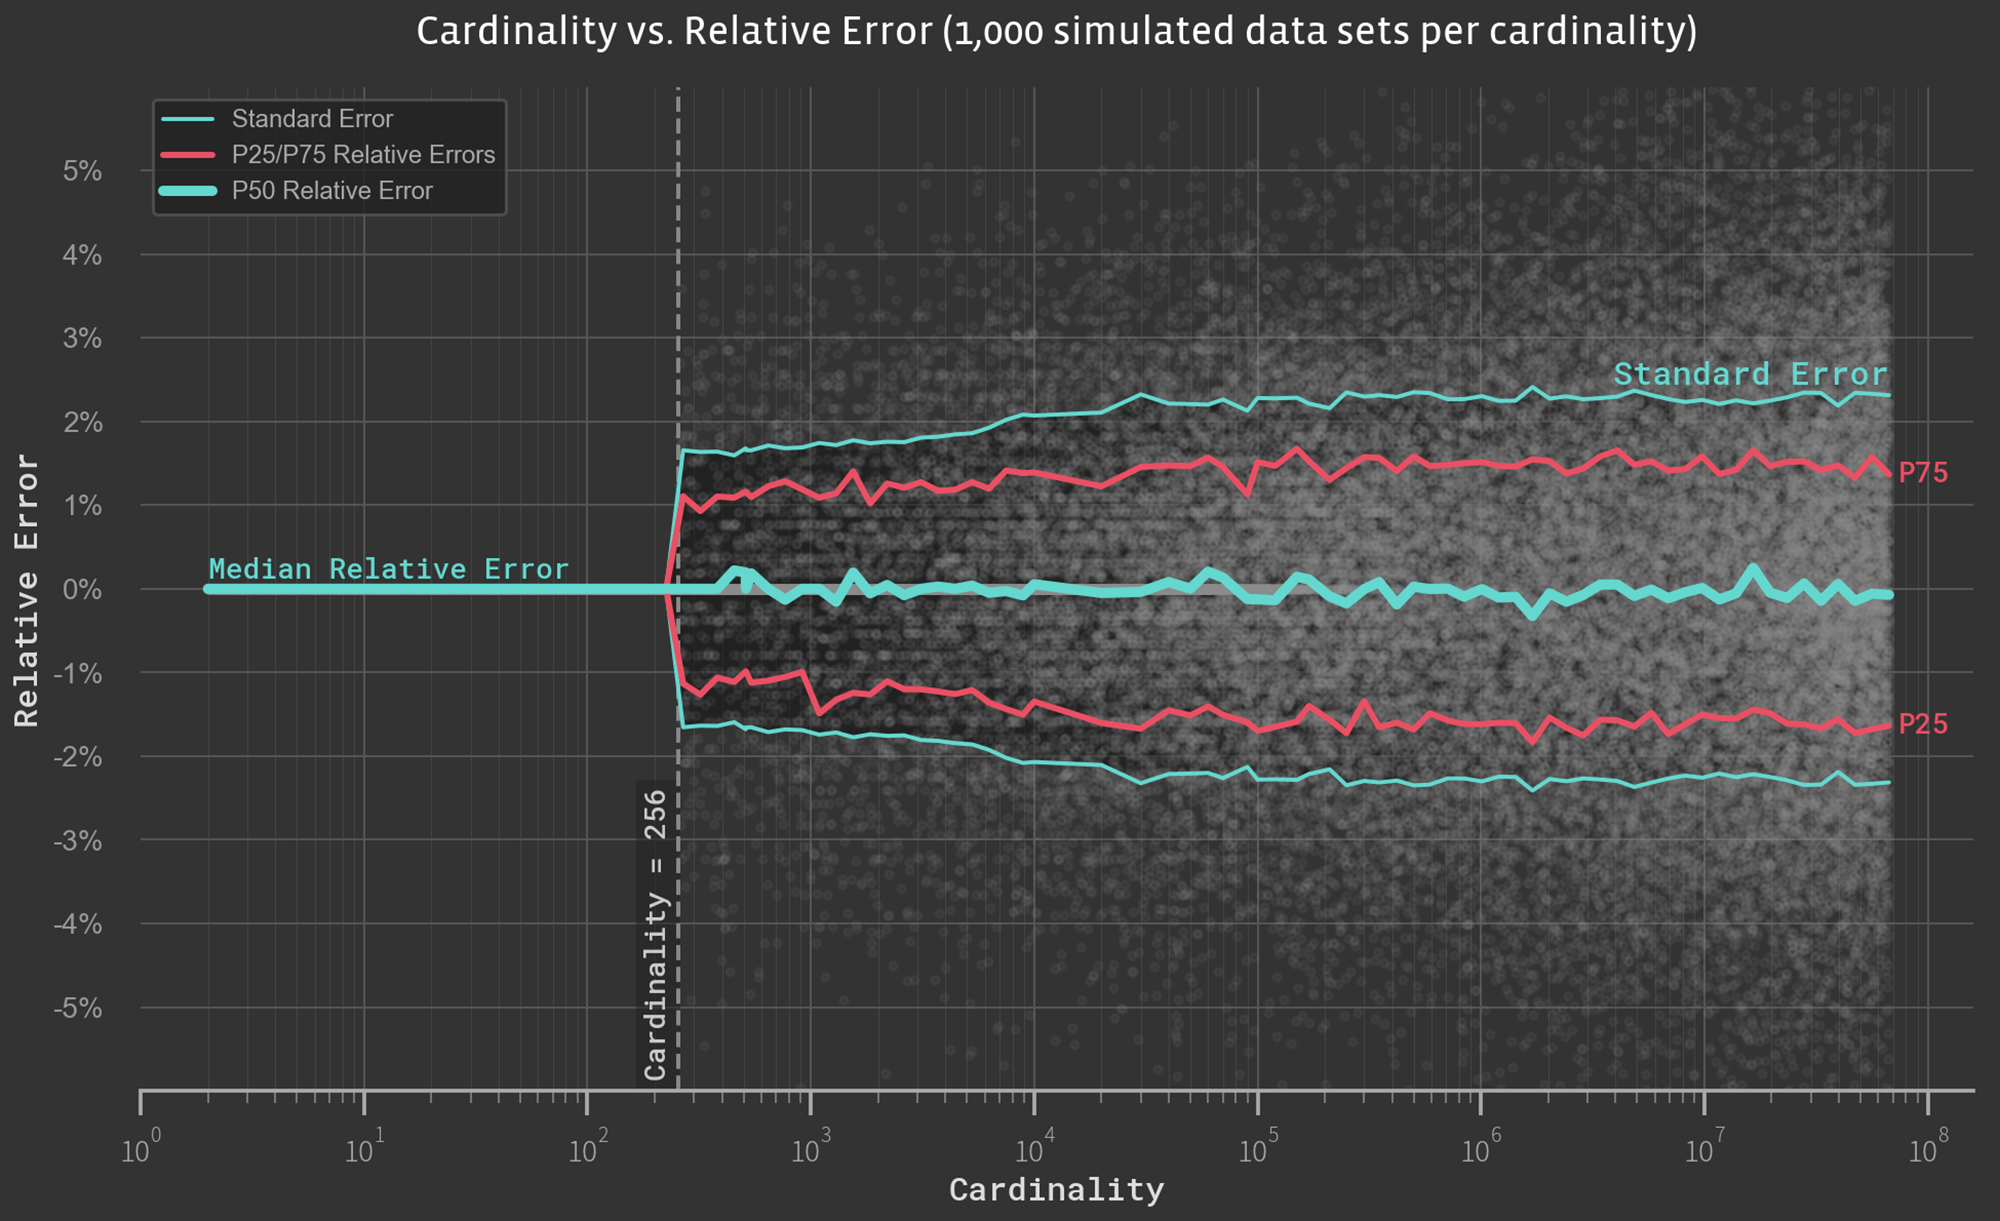 In an effort to evaluate the error rate as a function of the cardinality, we simulate 1,000 samples of random numbers across a range of cardinalities and evaluate the observed relative errors.